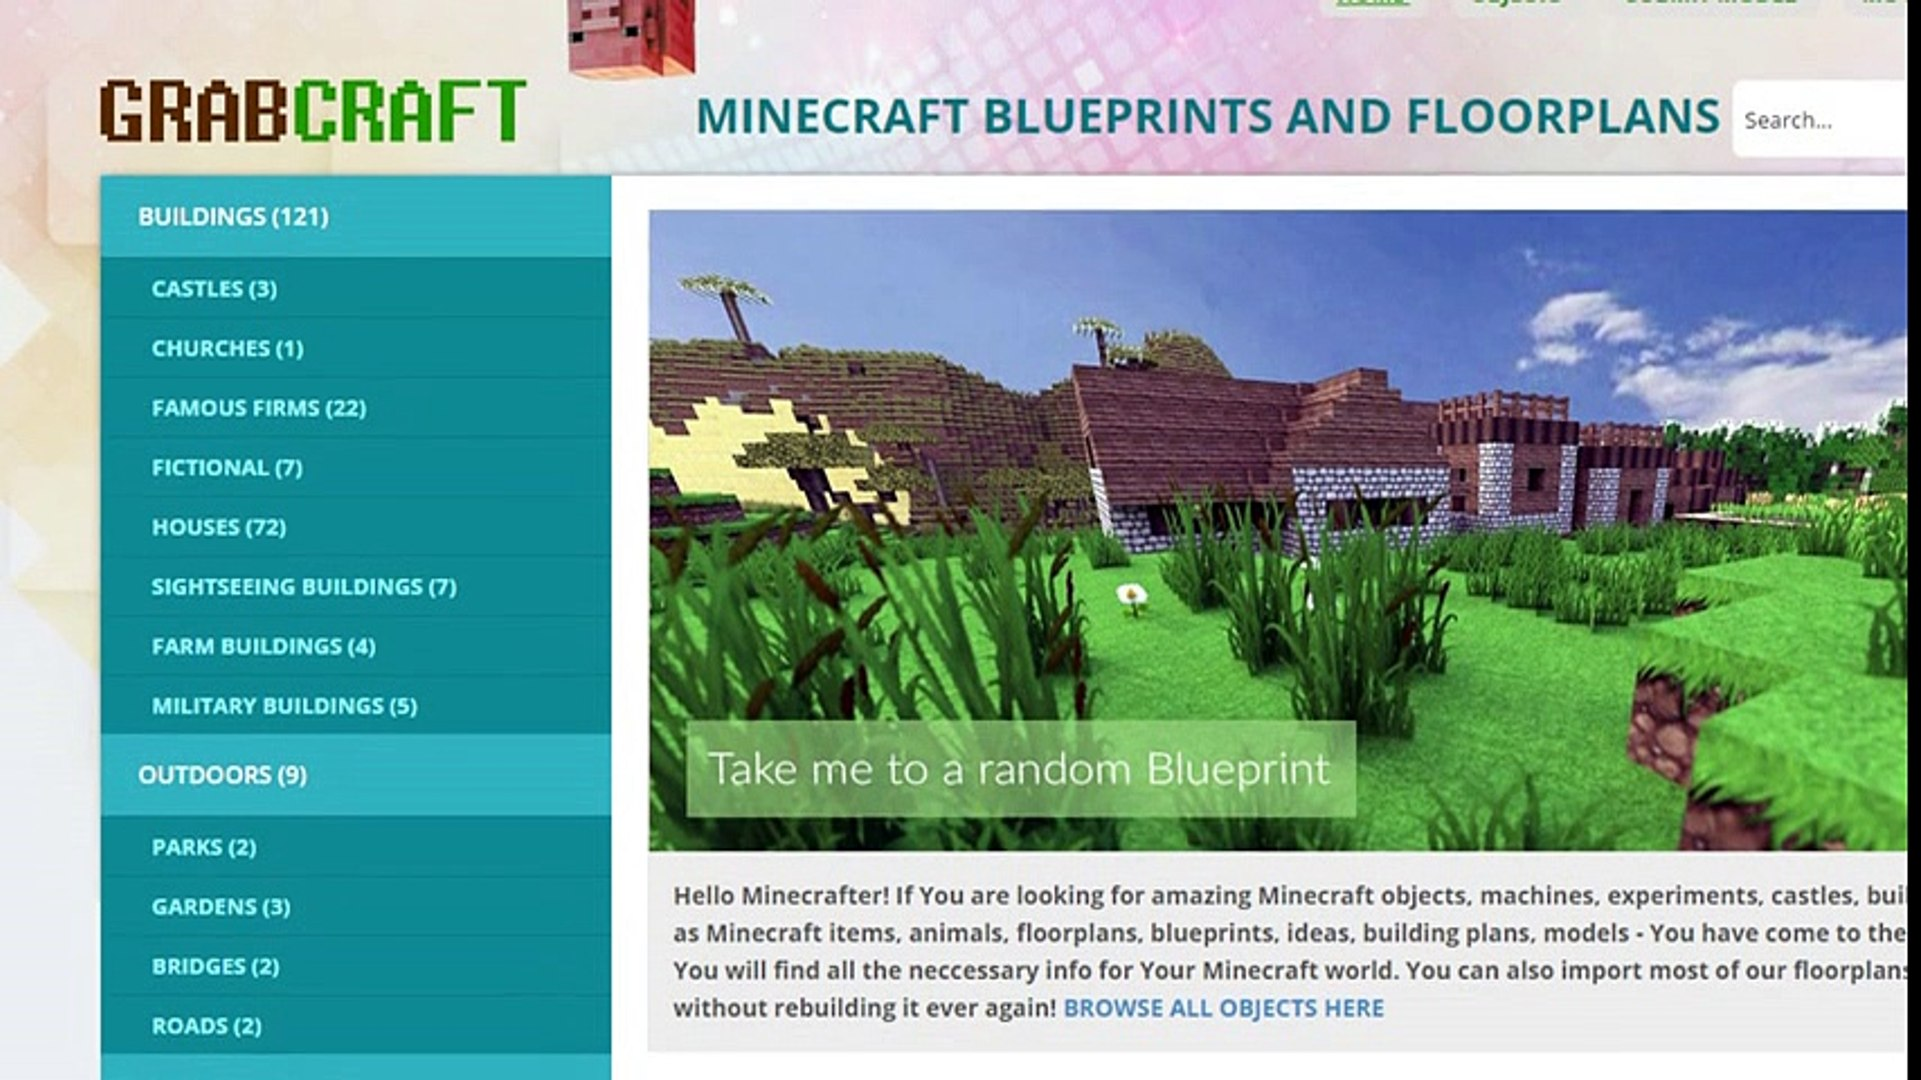 Searching For Minecraft Minecraft Buildings Blueprints Or 3d Models Online